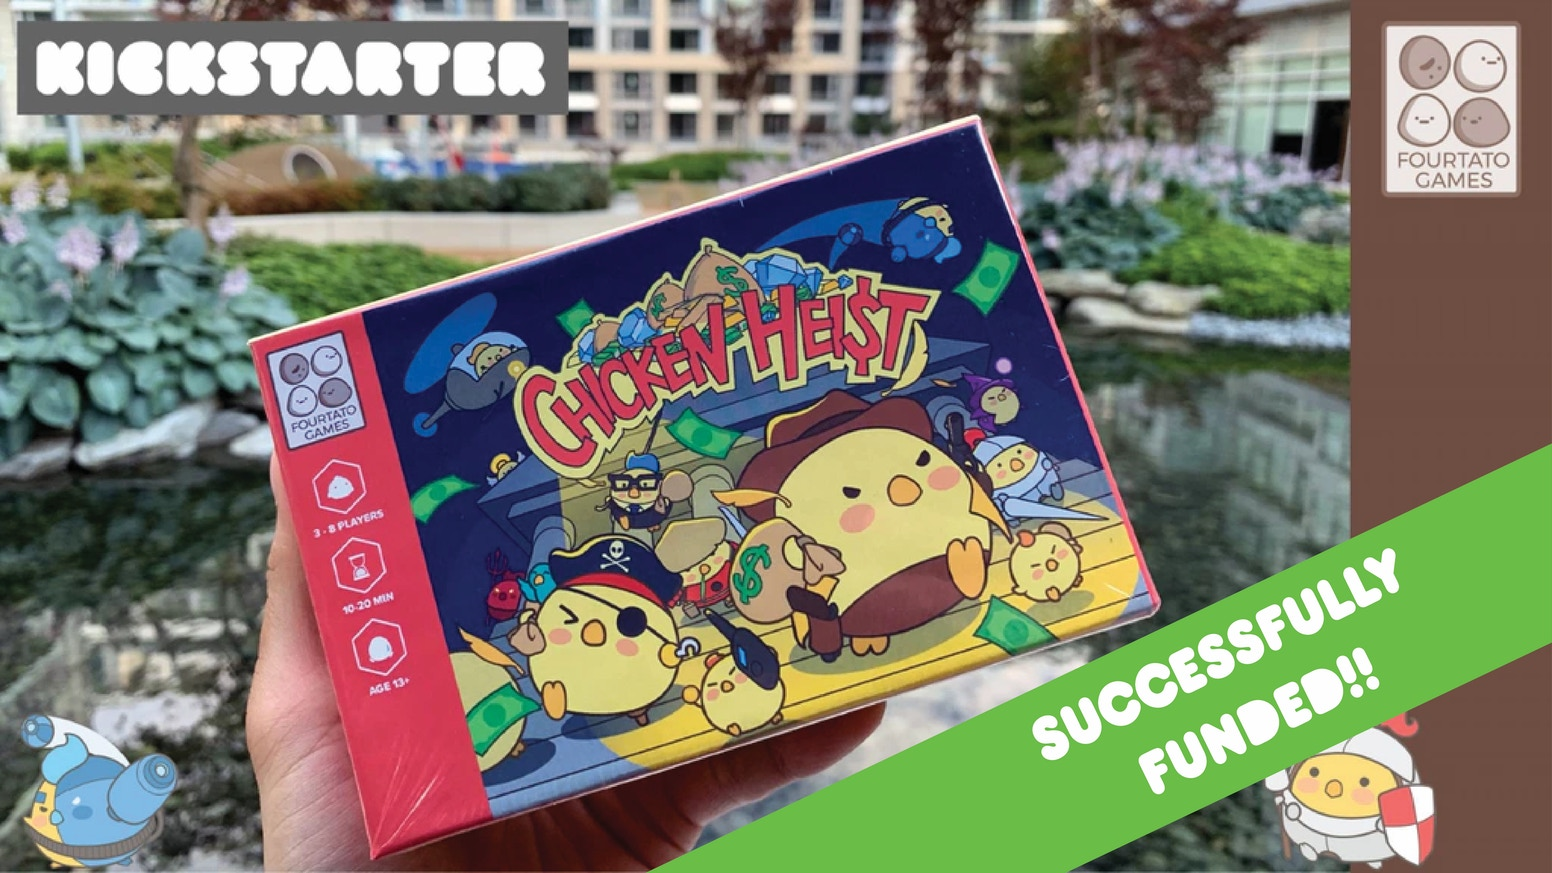 Chicken Heist is a push-your-luck card game for 3-8 players. A dynamic game where danger awaits you in every turn!